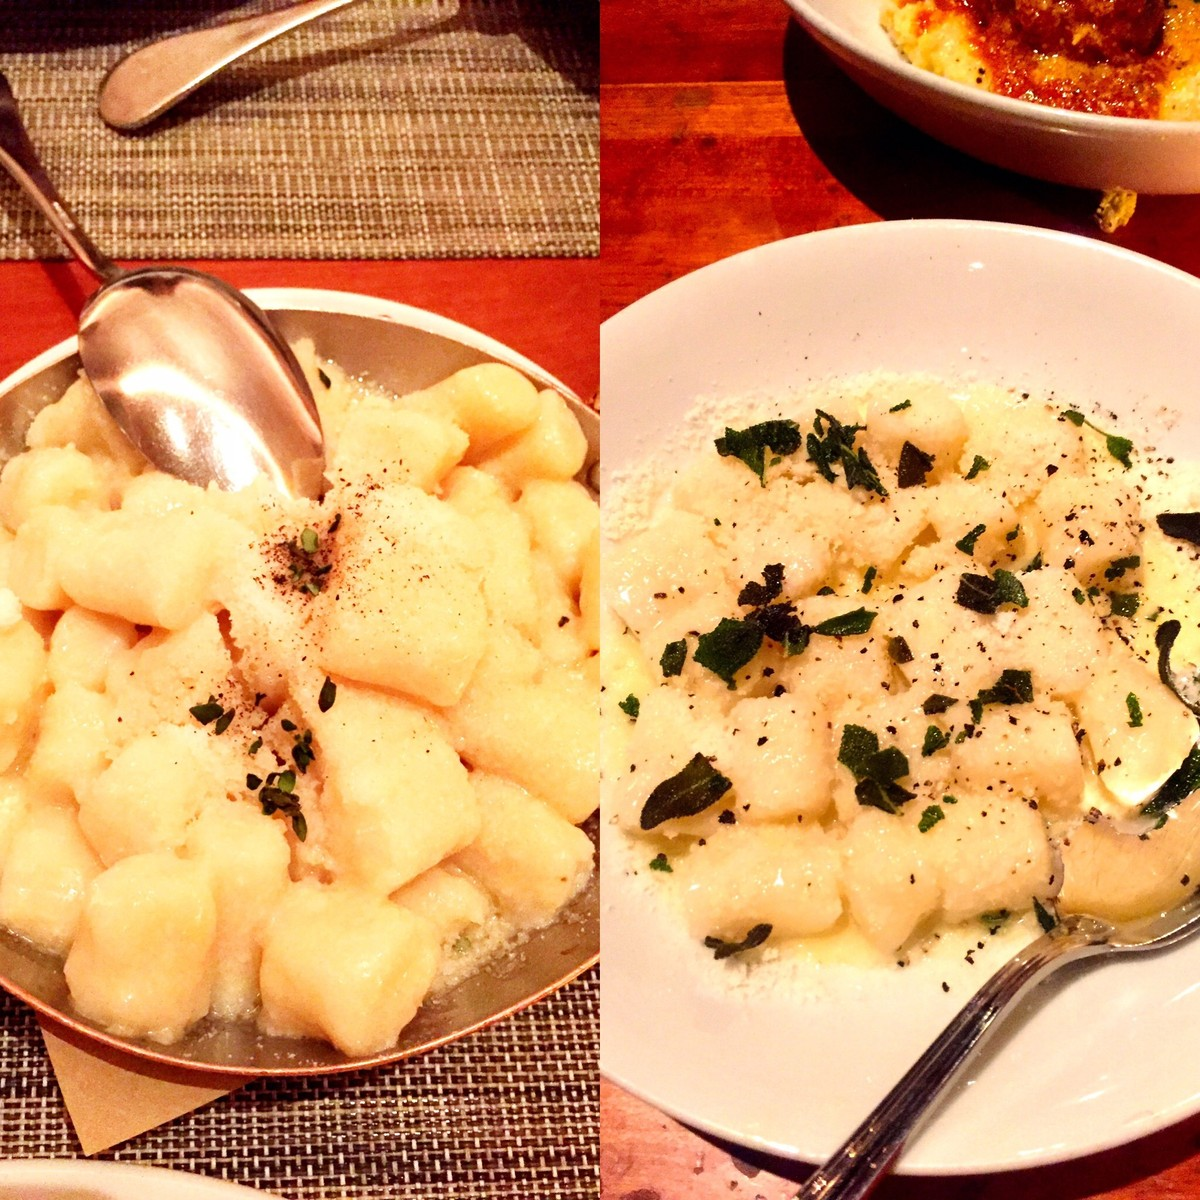 Gnocchi at Craft (left); Gnocchi at Hearth (right)